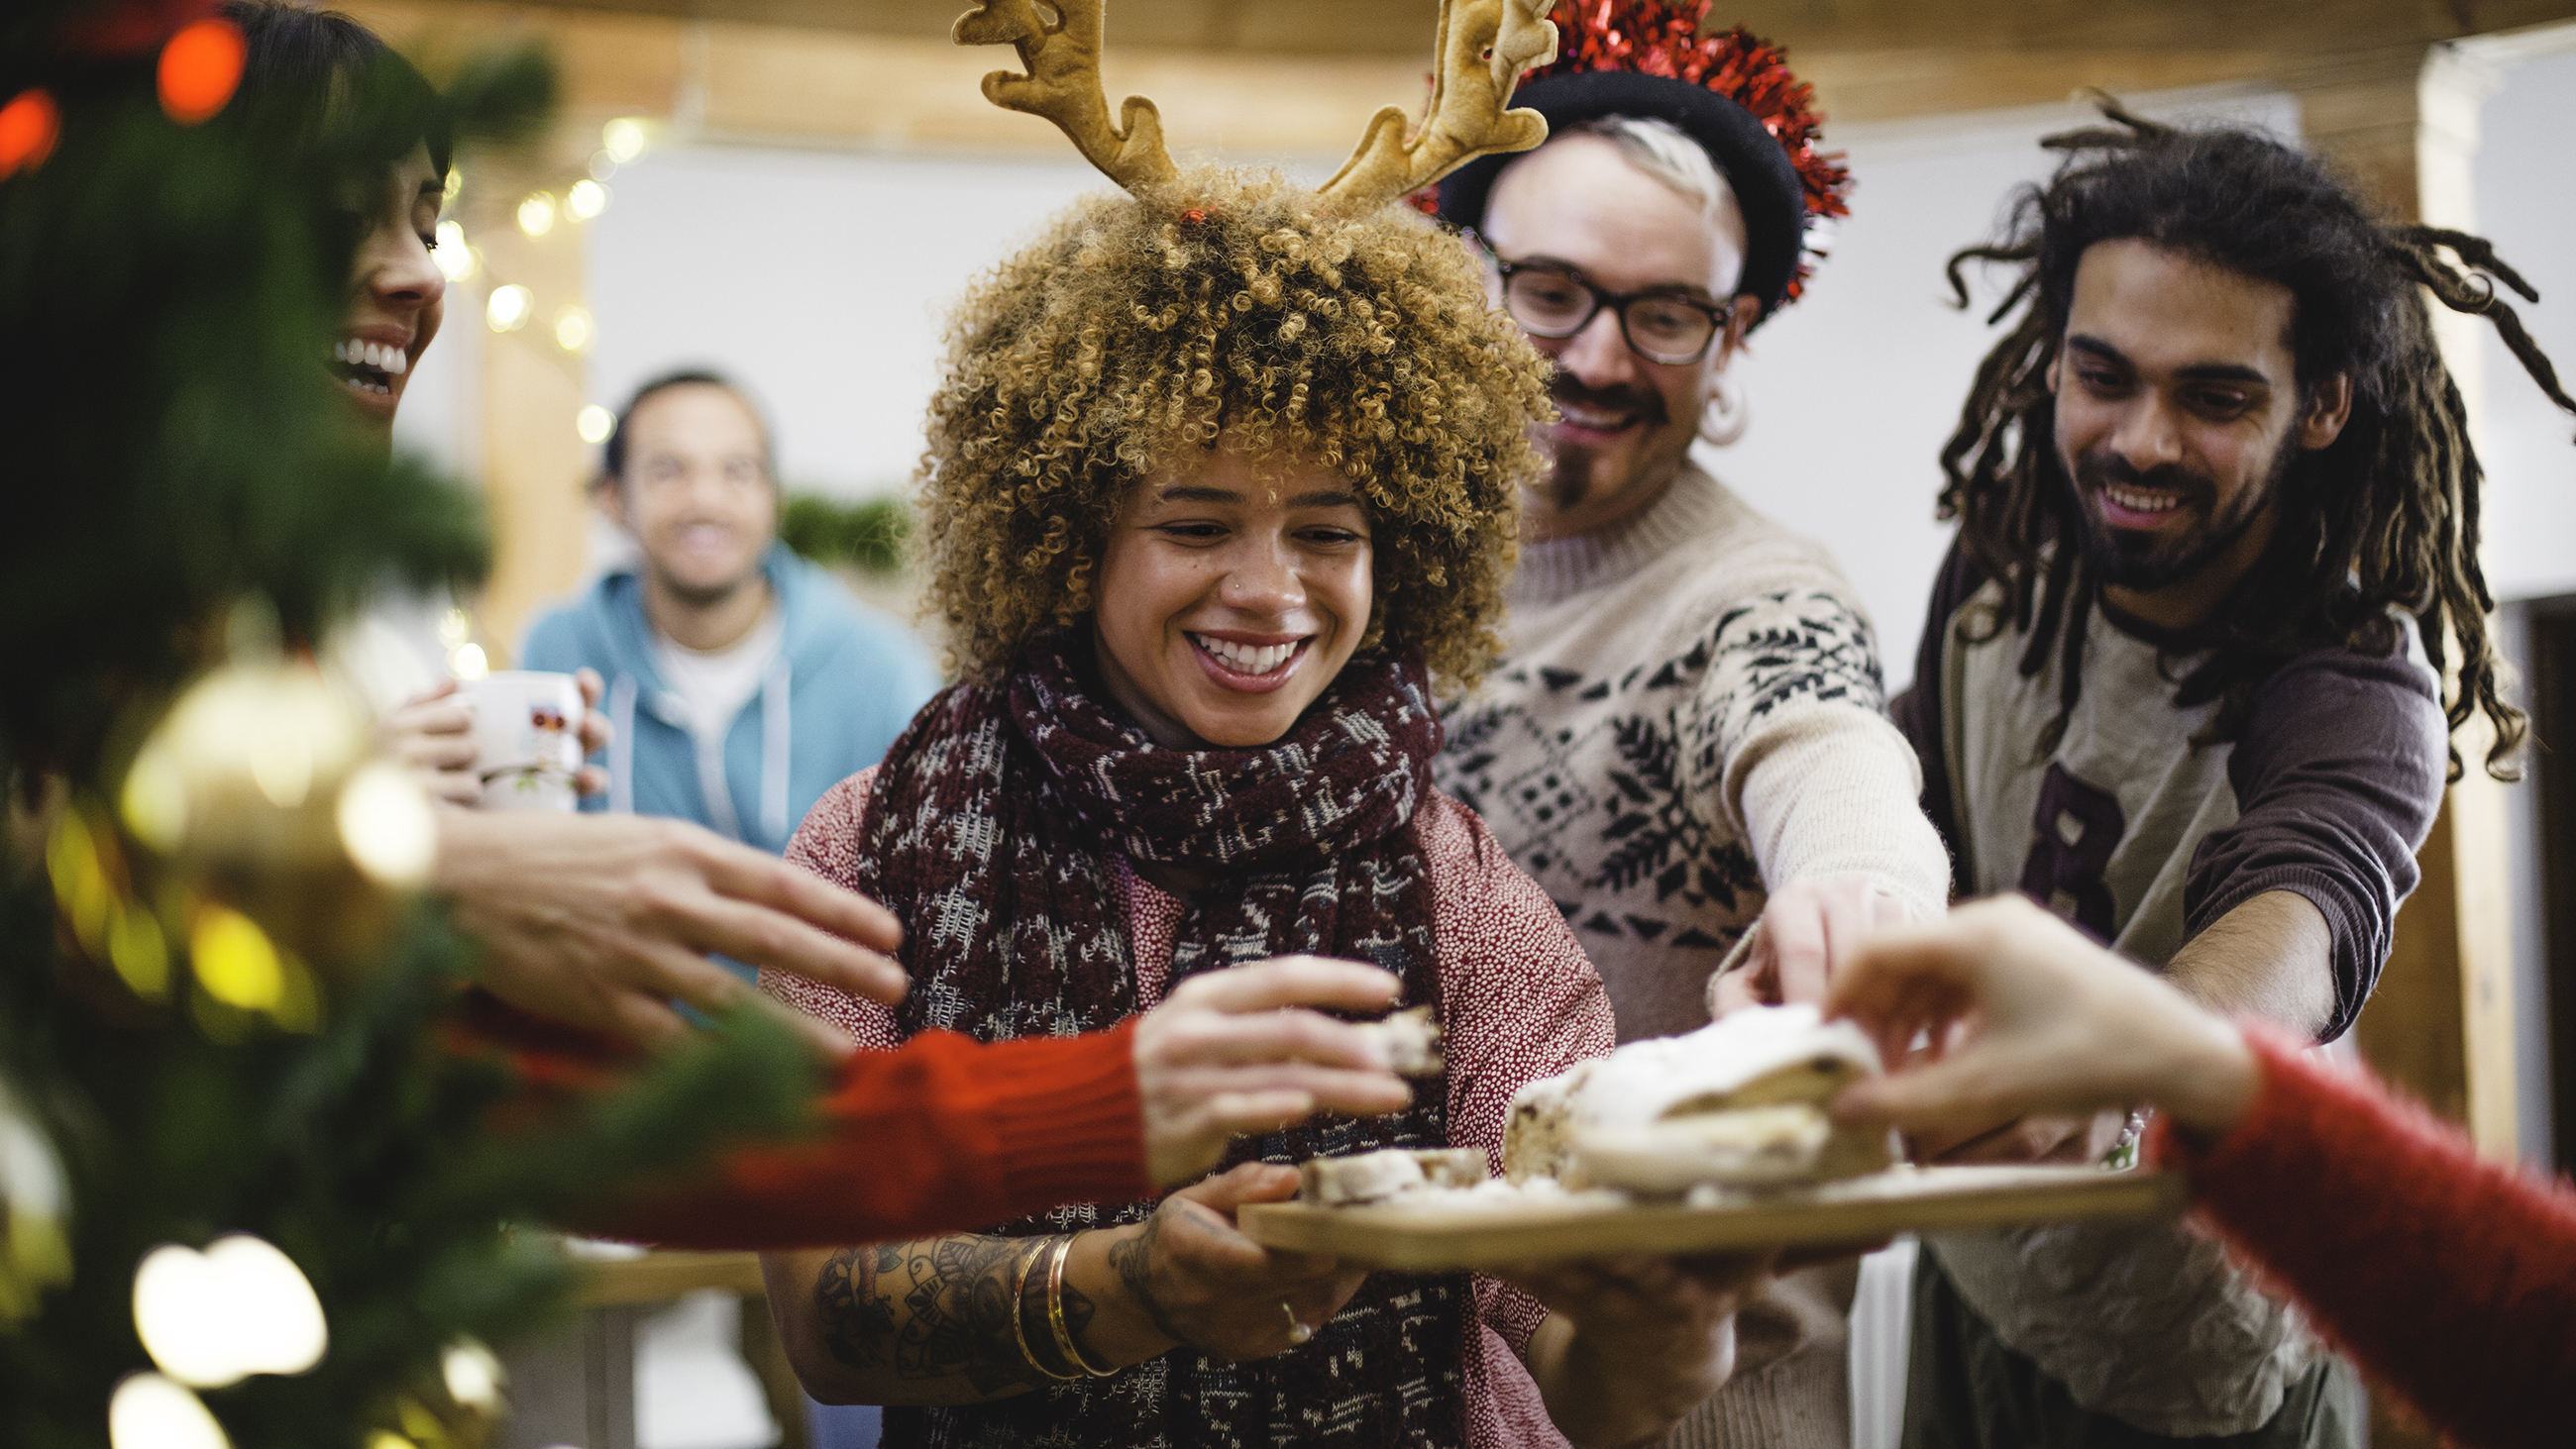 4 Holiday Food Myths Busted